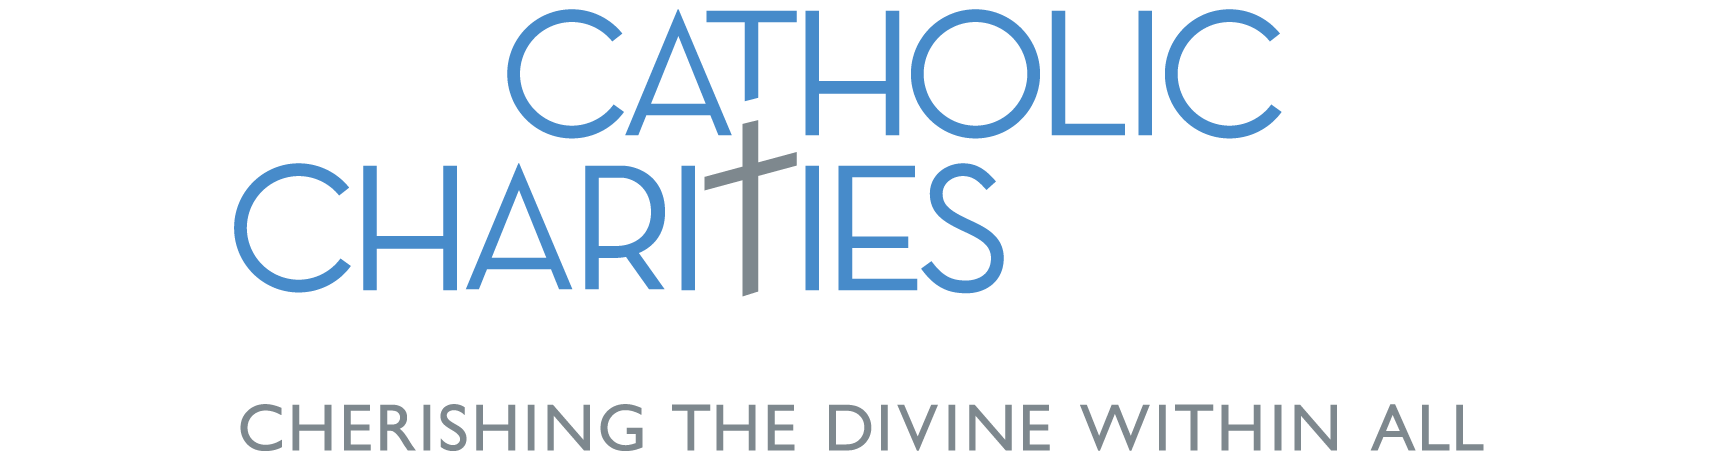 CATHOLIC CHARITIES-01WIDE-01.png